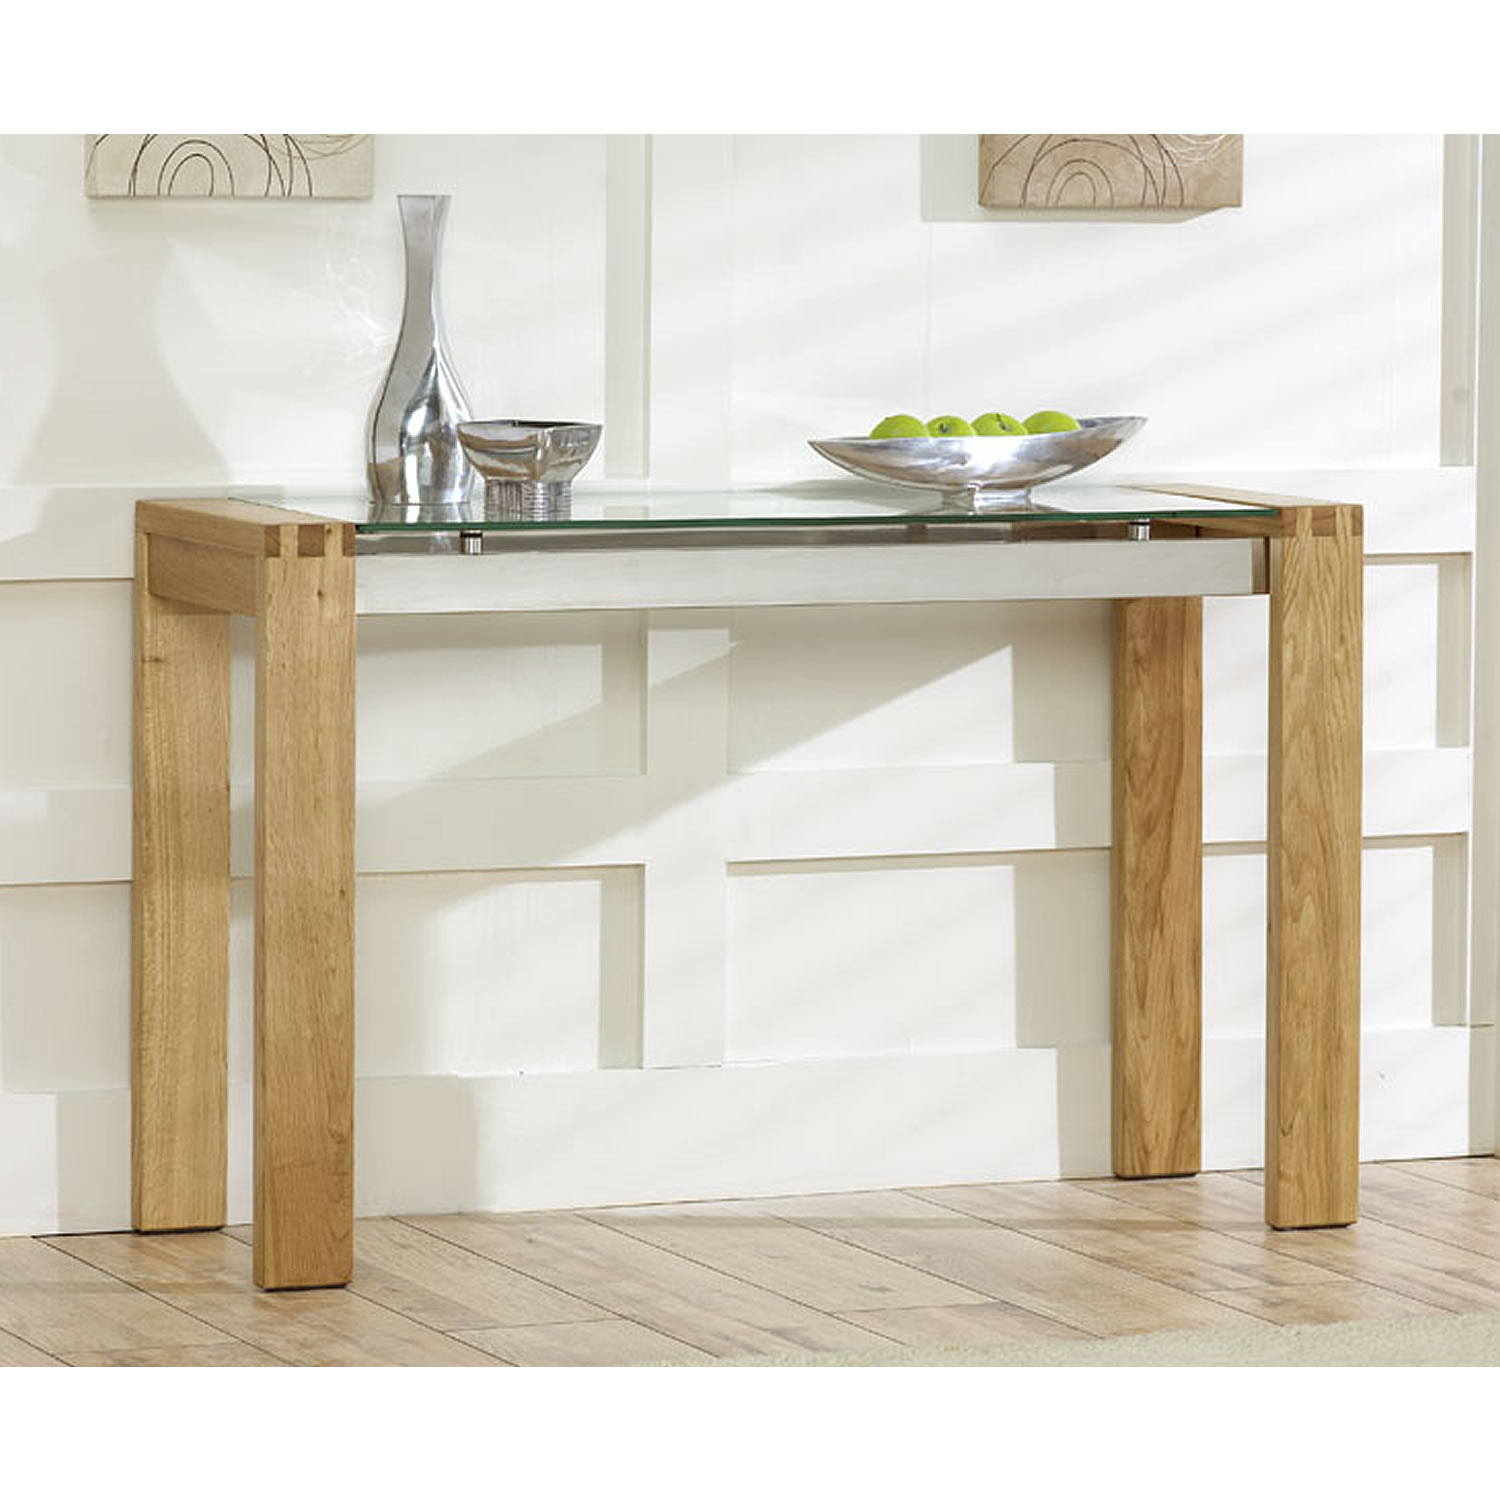 Venice Solid Oak Console Table With Glass Top Next Day Elegant Within Era Glass Console Tables (View 3 of 30)